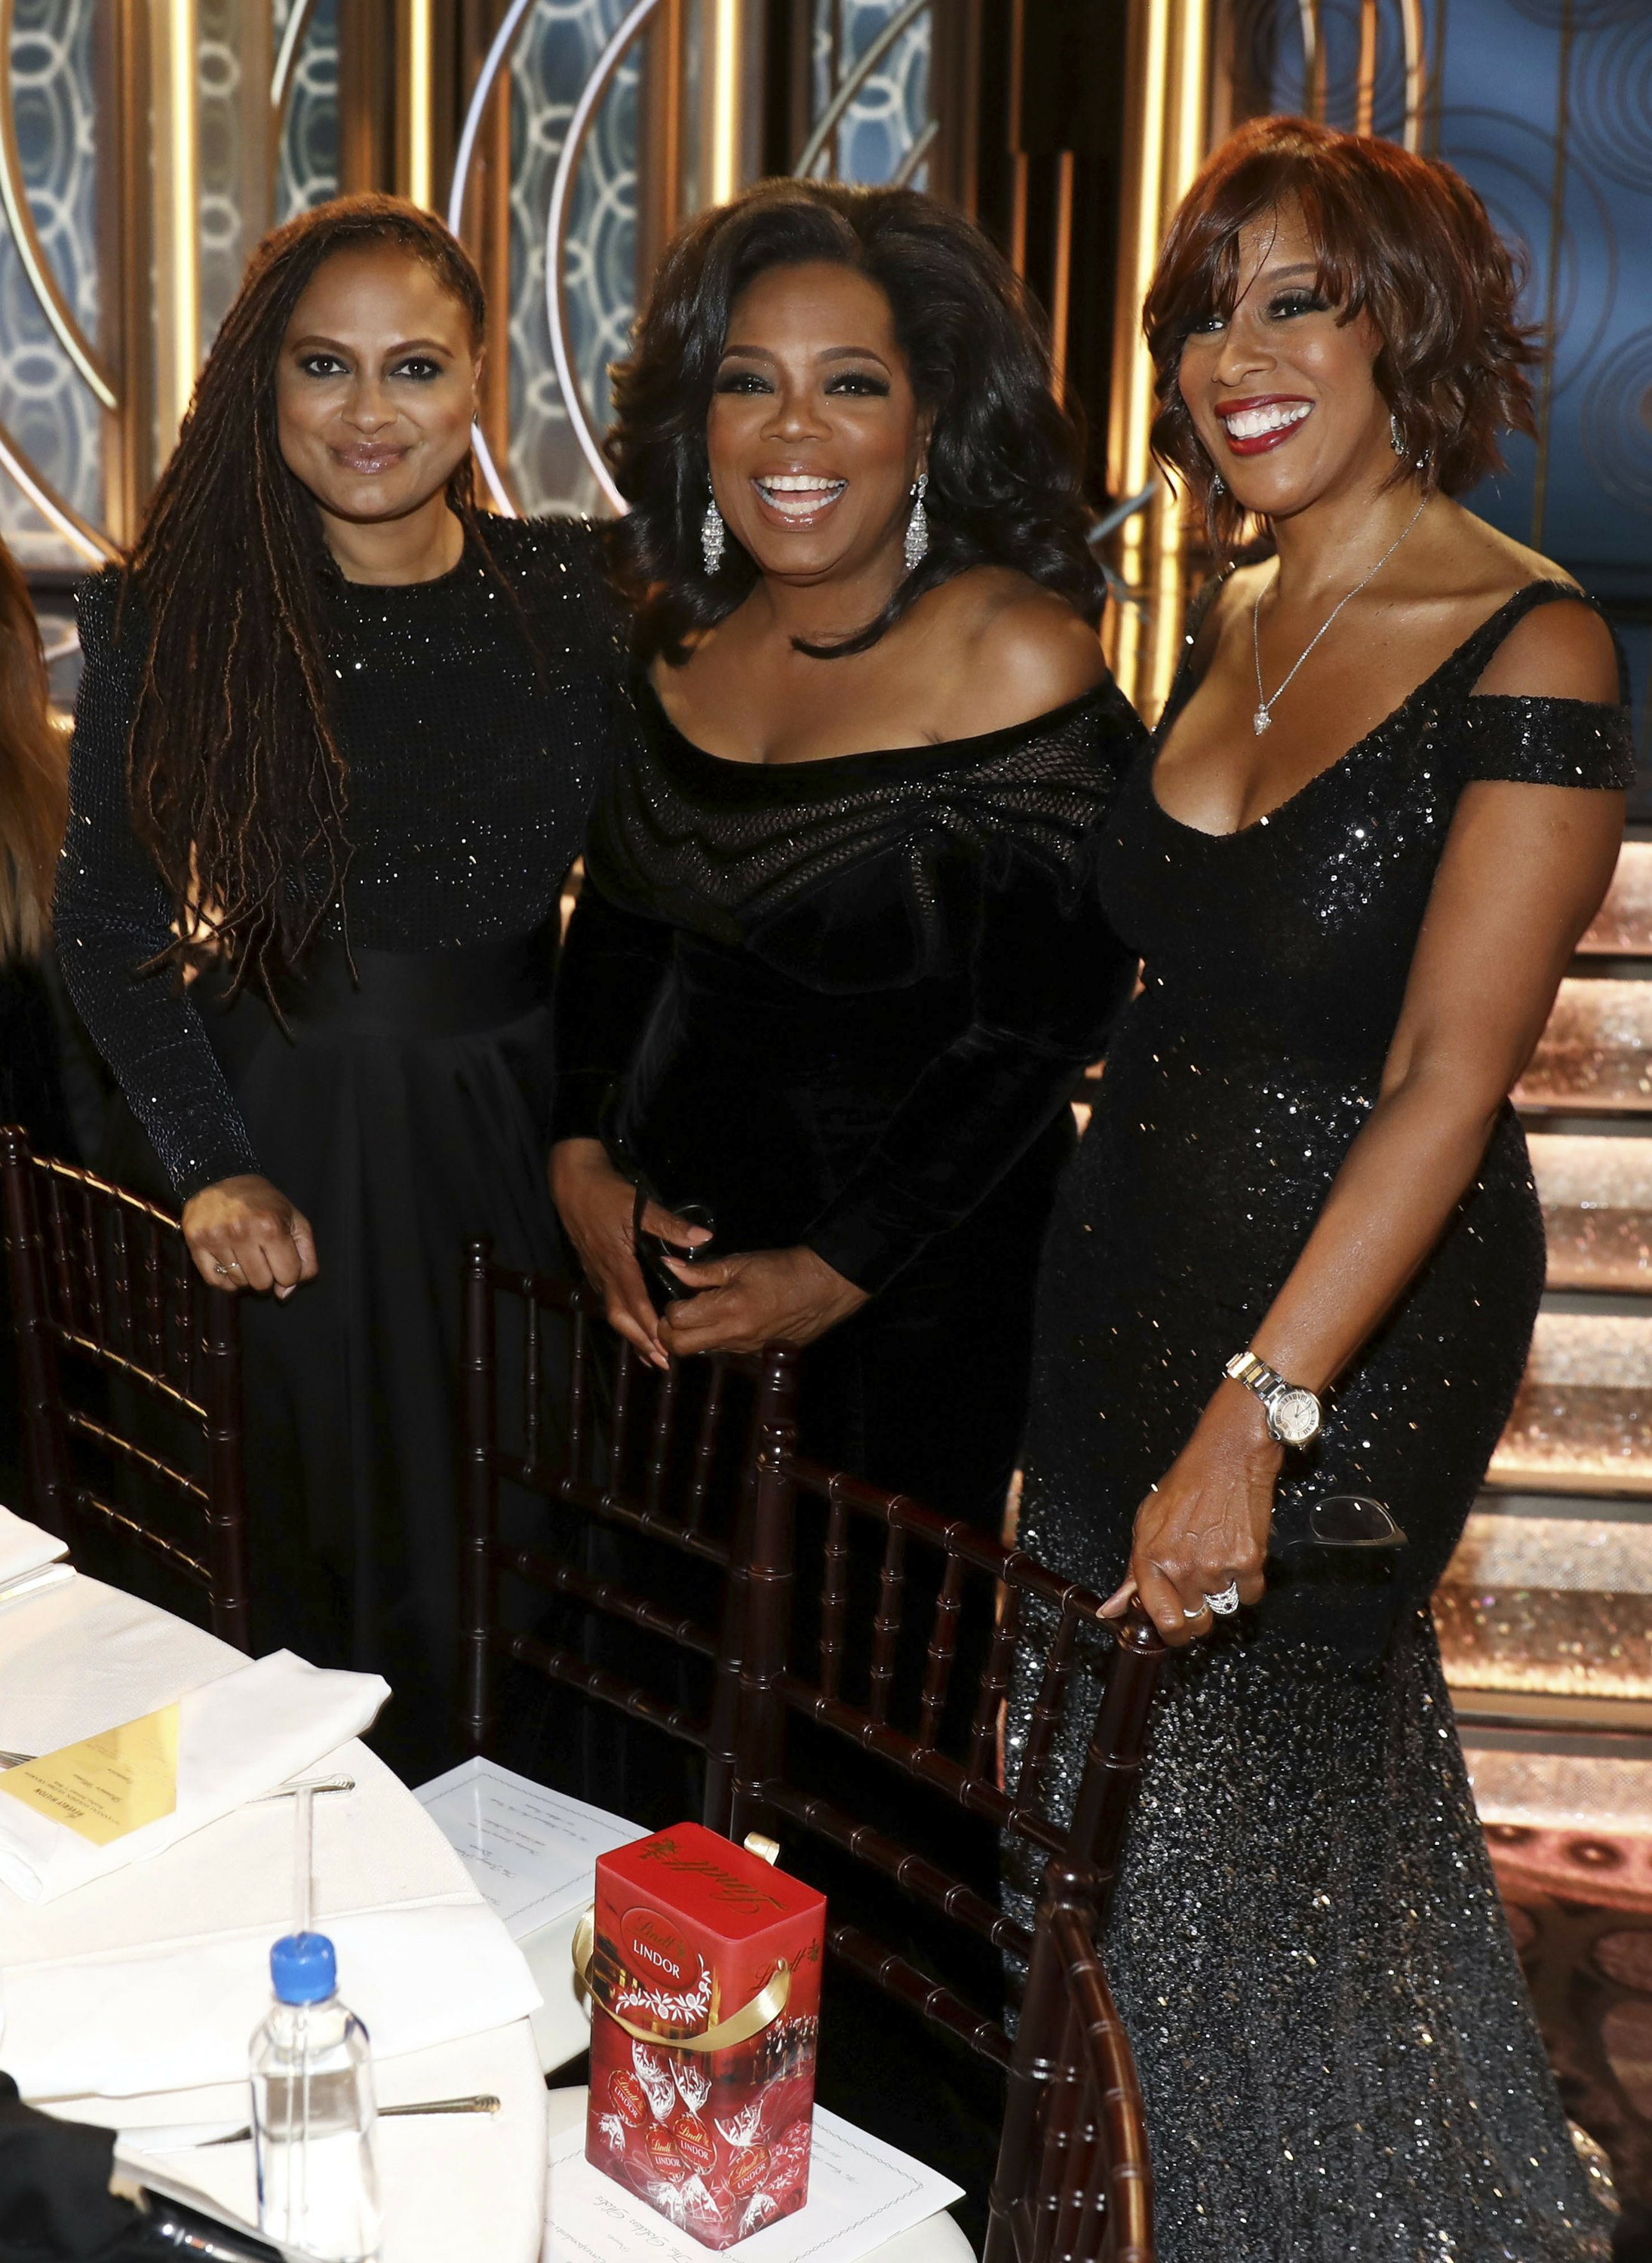 The Latest: Trump says he doesn't think Winfrey will run